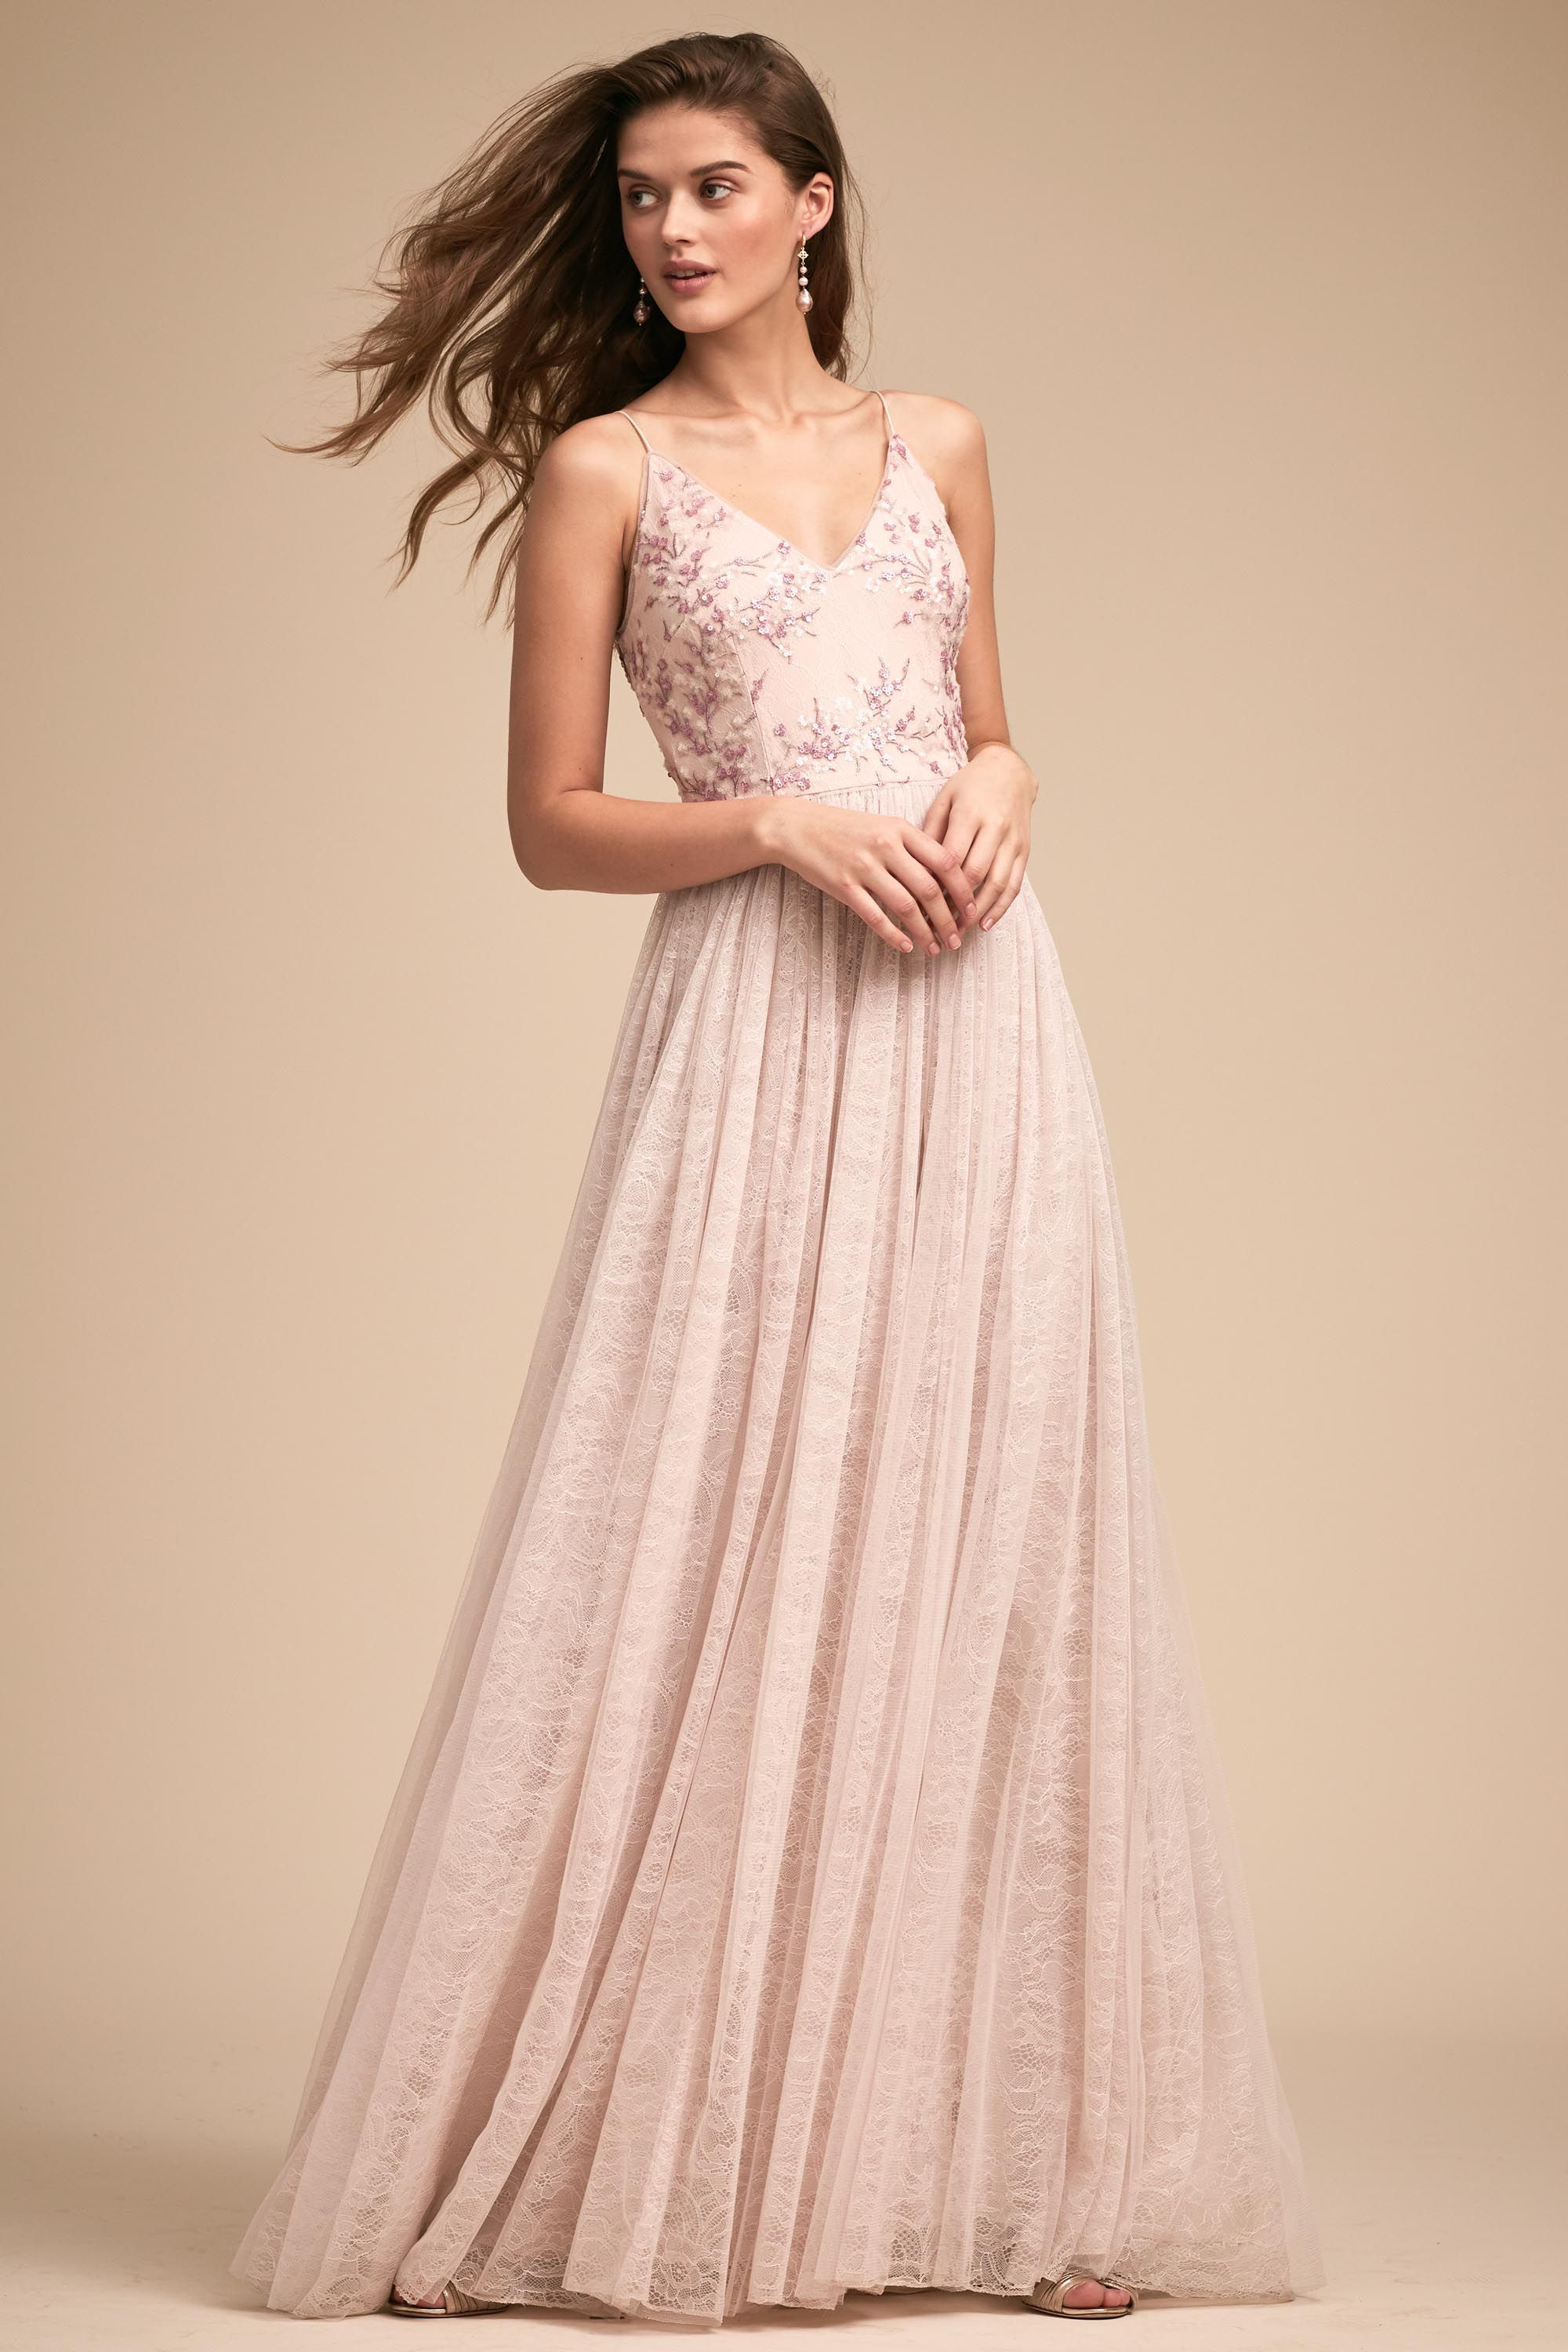 Cluny Dress | Wedding bridesmaid dresses, Pink bridesmaid dresses ...